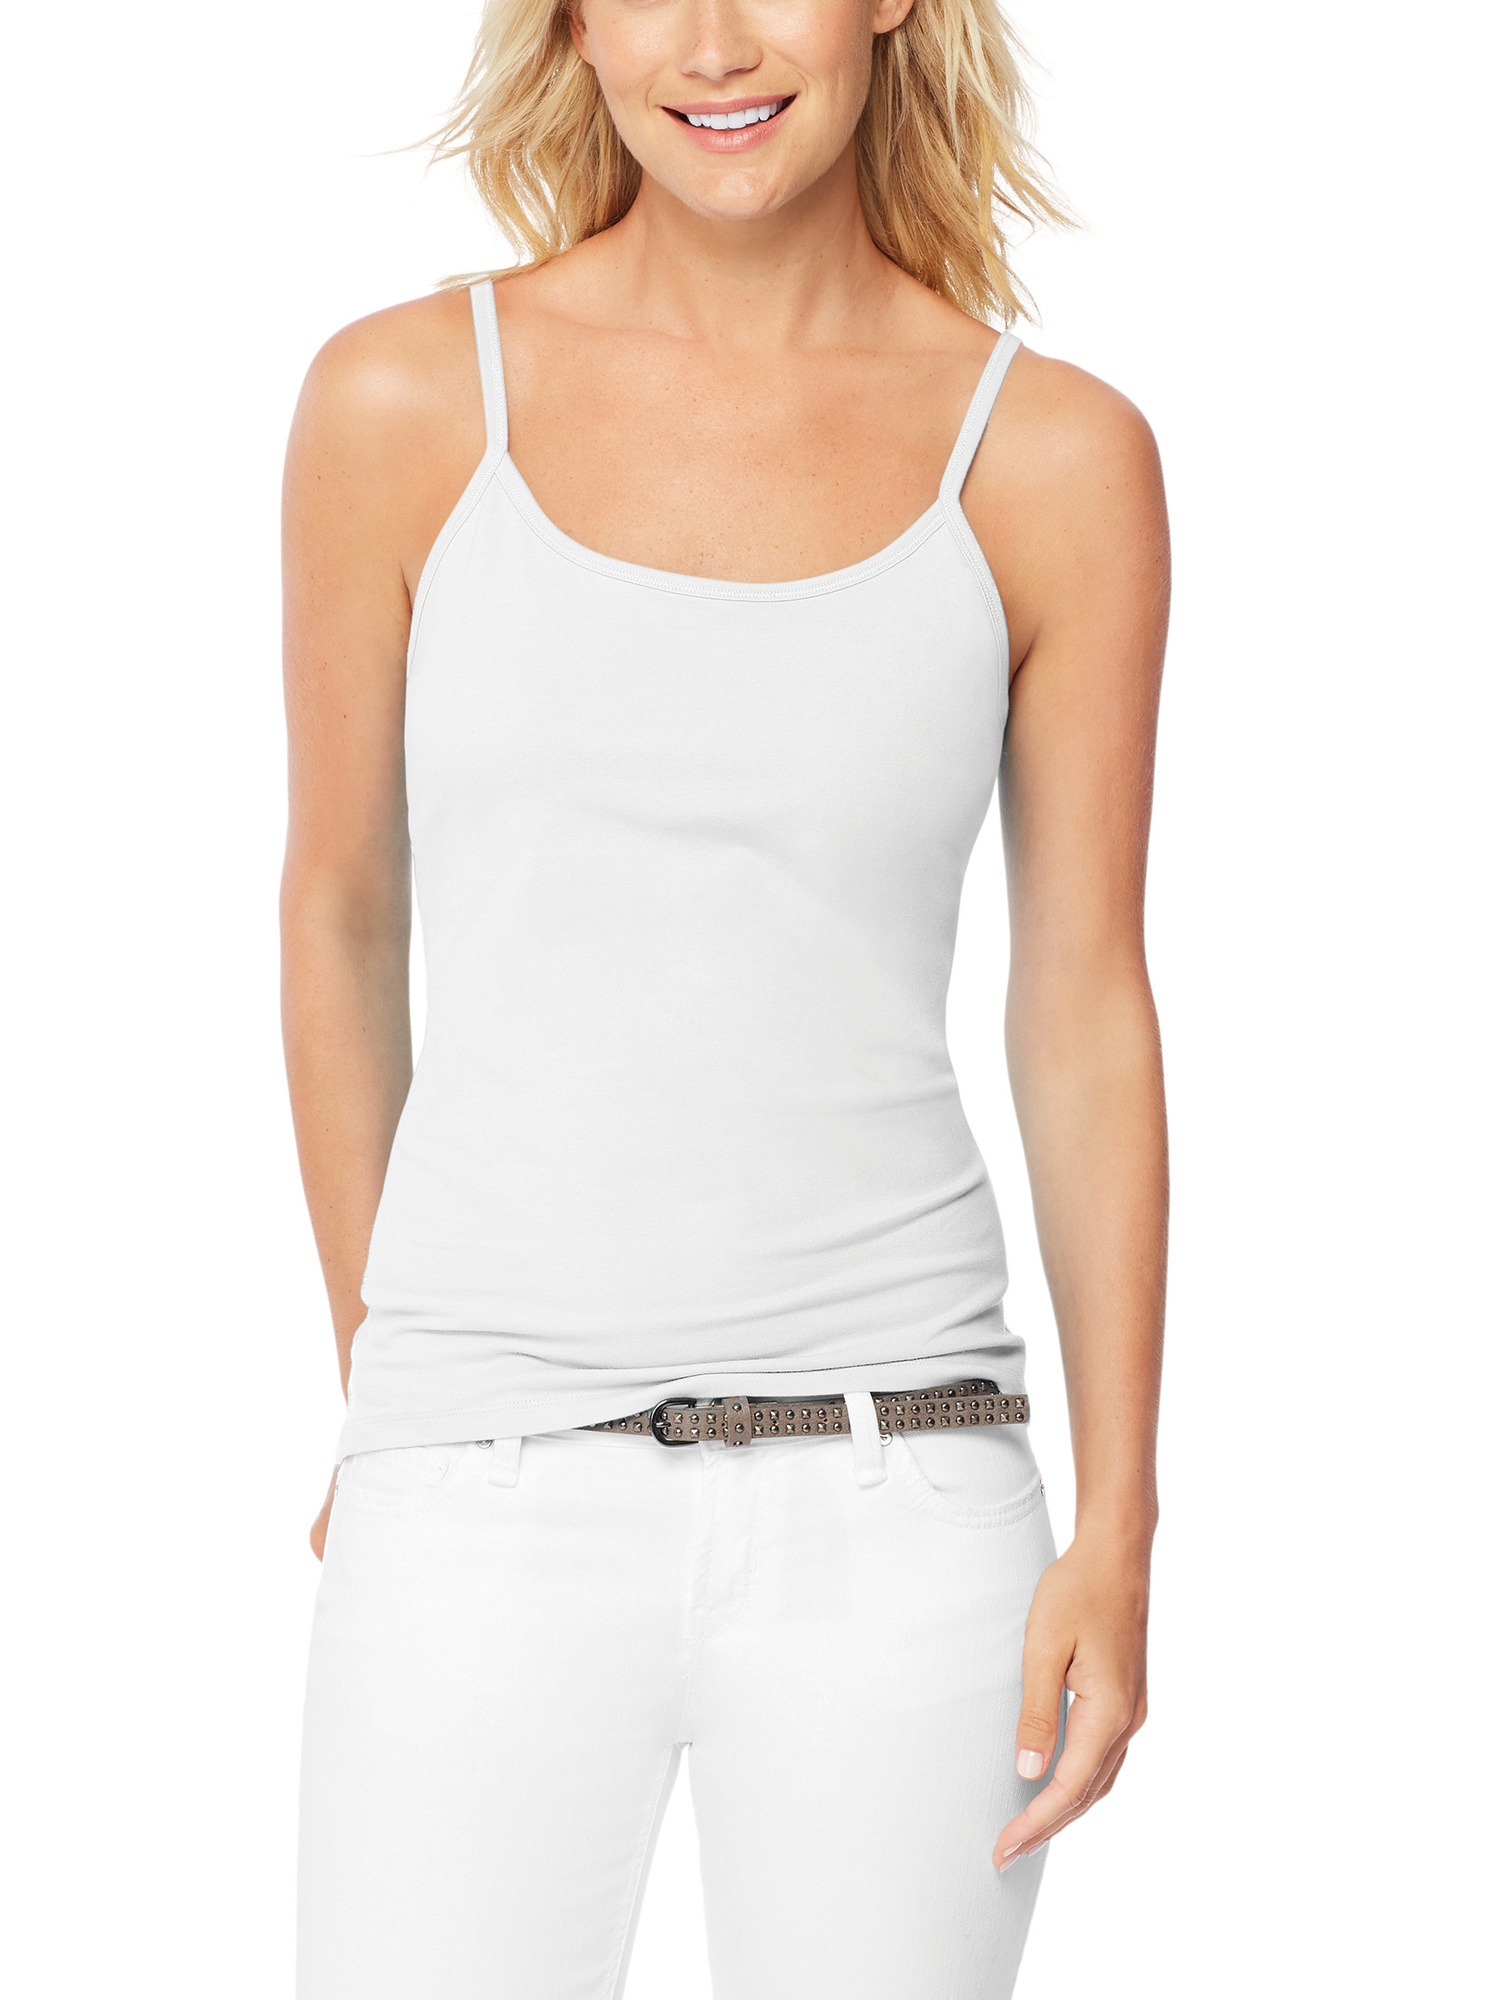 Women's Stretch Cotton Cami with Built-In Shelf Bra